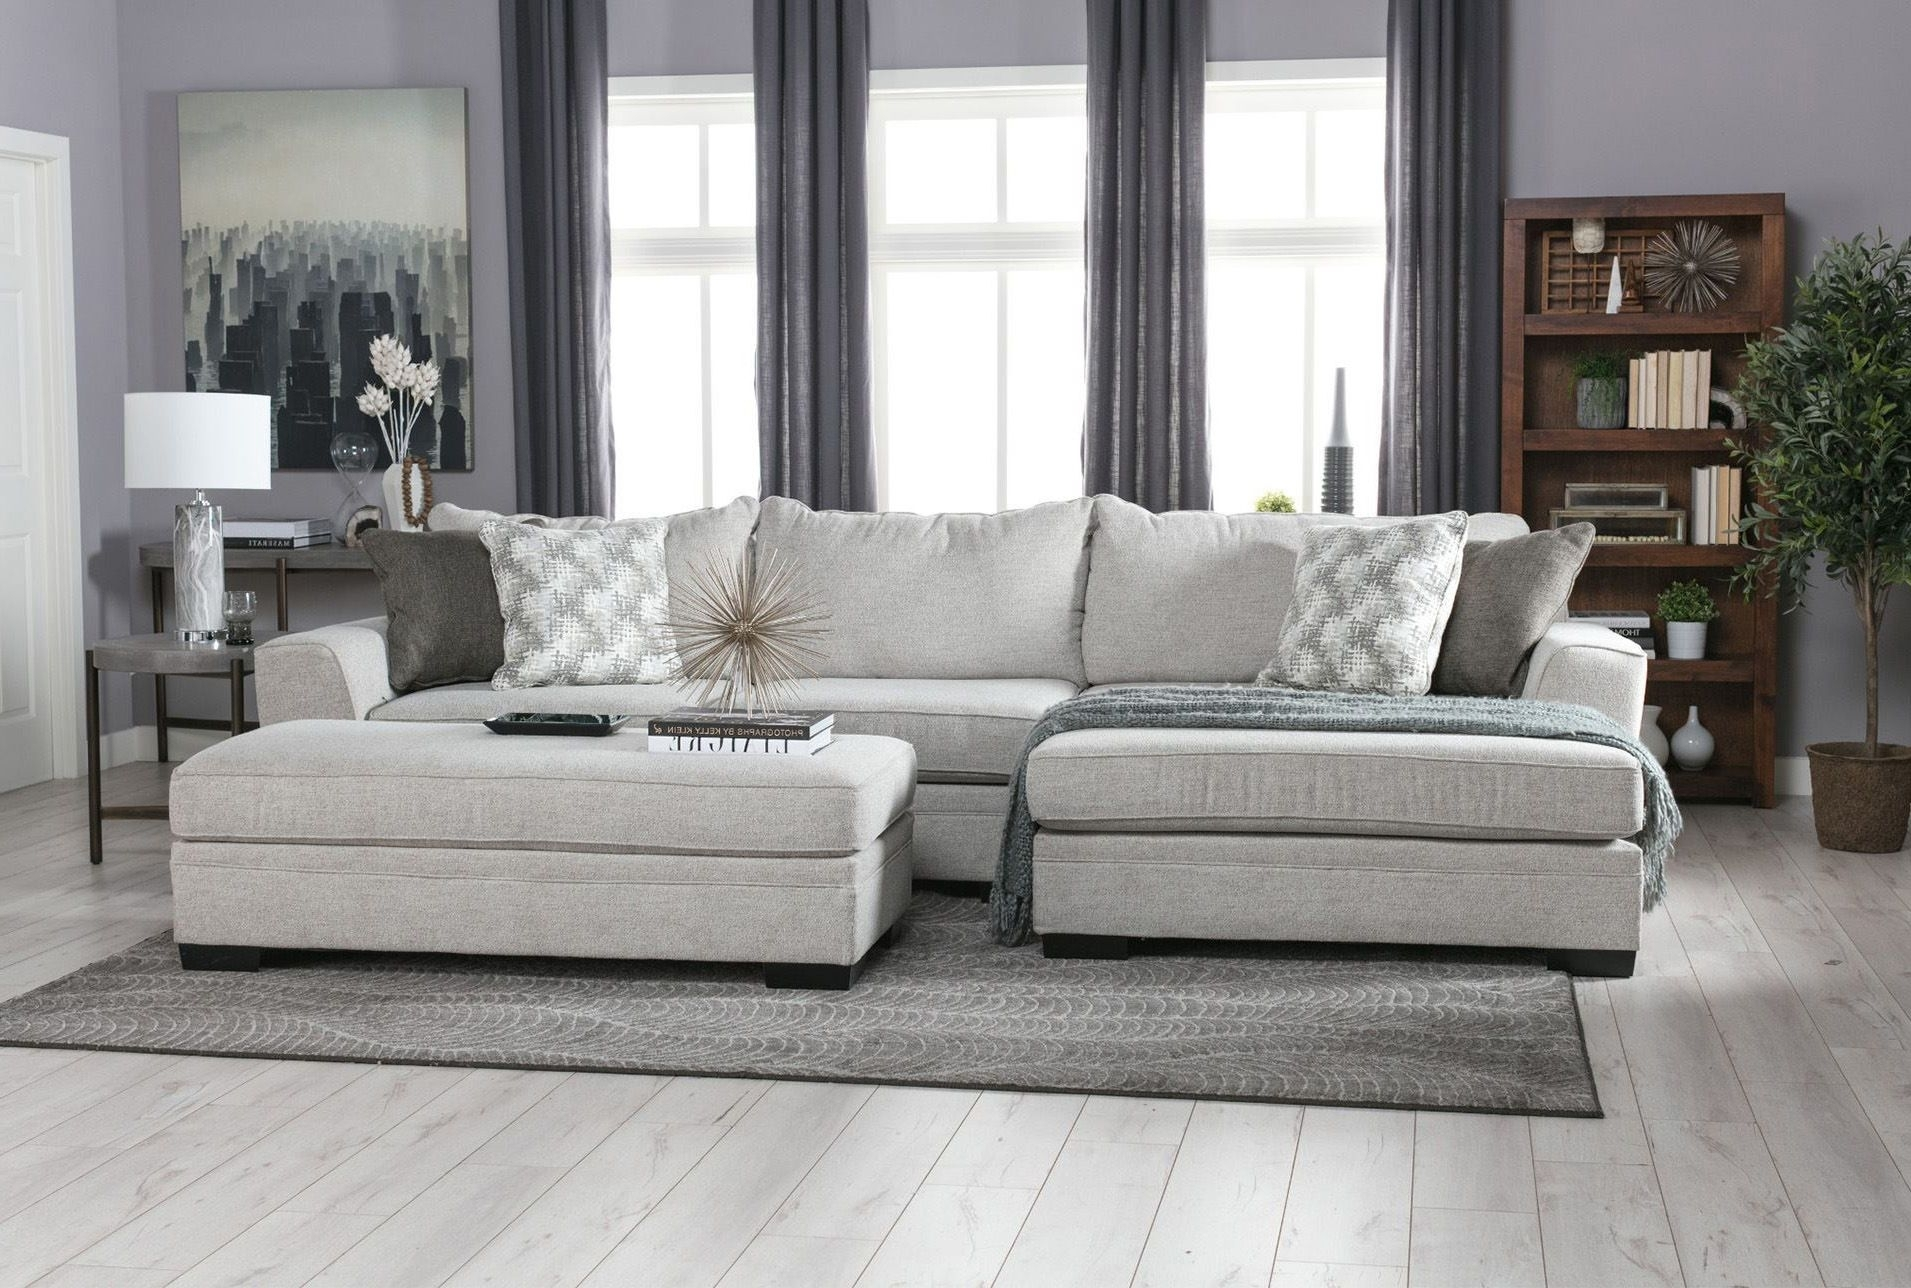 Delano 2 Piece Sectional W/raf Oversized Chaise | Living Room Ideas With Delano 2 Piece Sectionals With Raf Oversized Chaise (Image 13 of 25)